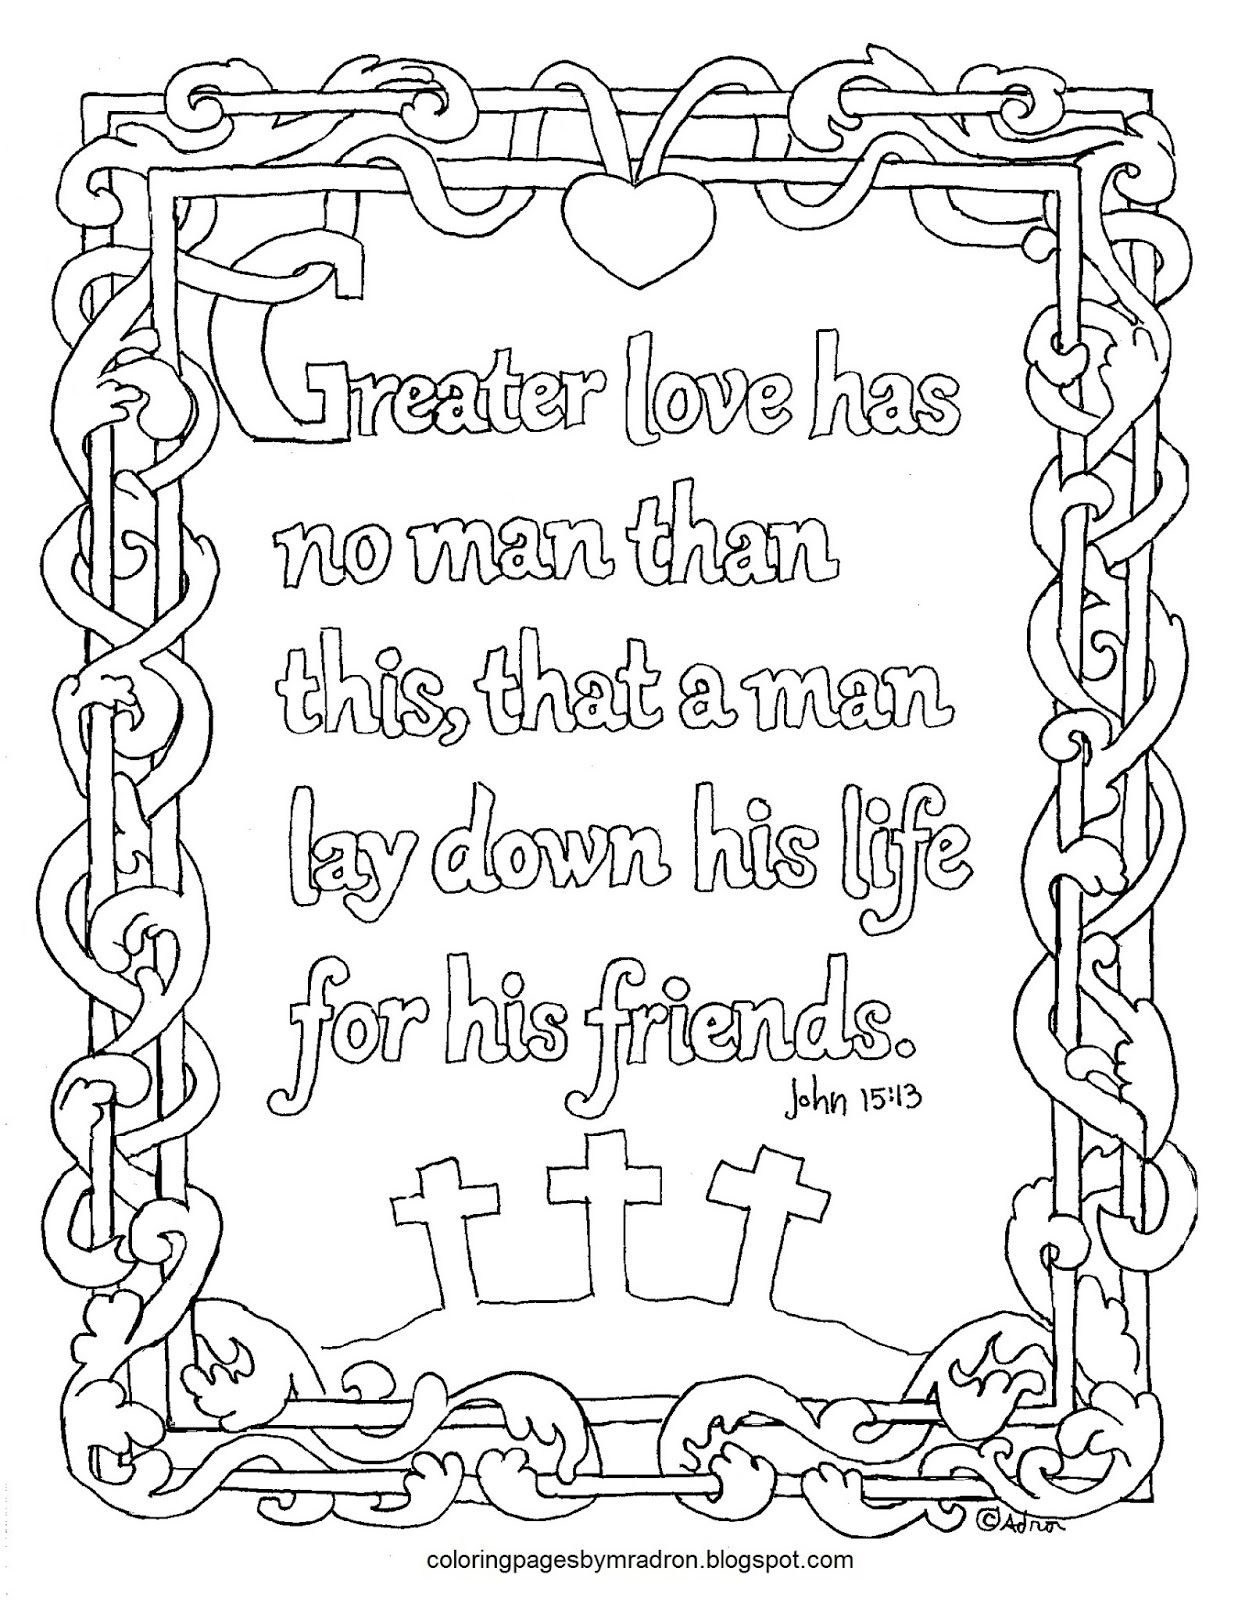 Coloring Pages For Kids By Mr Adron John 15 13 Greater